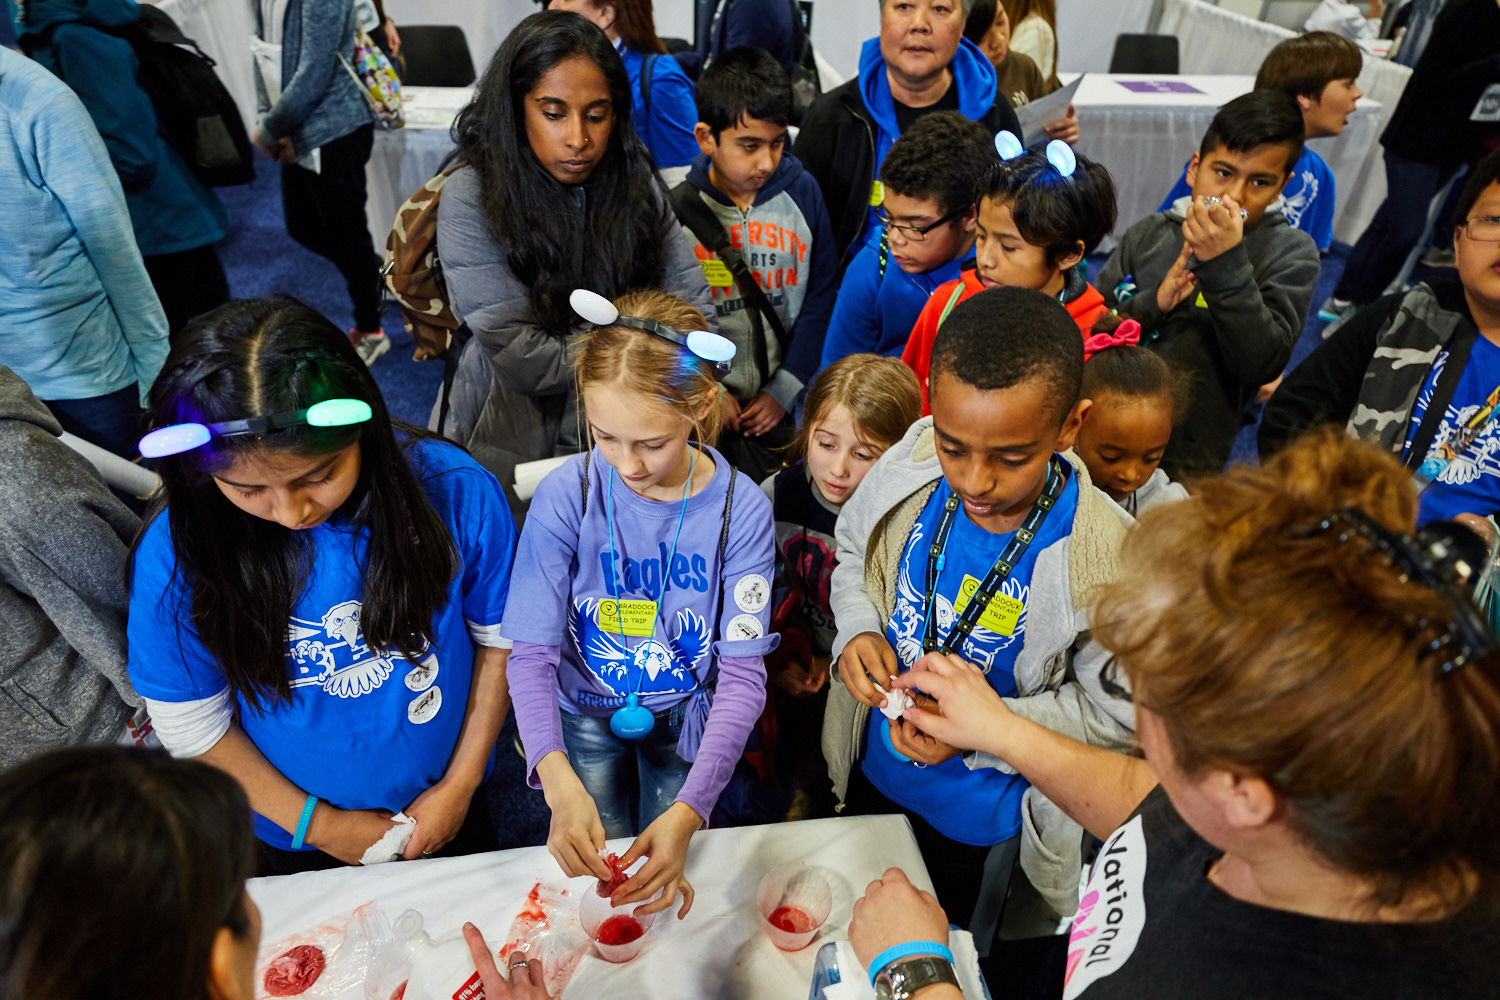 Children participate in the 2018 USA Science and Engineering Festival